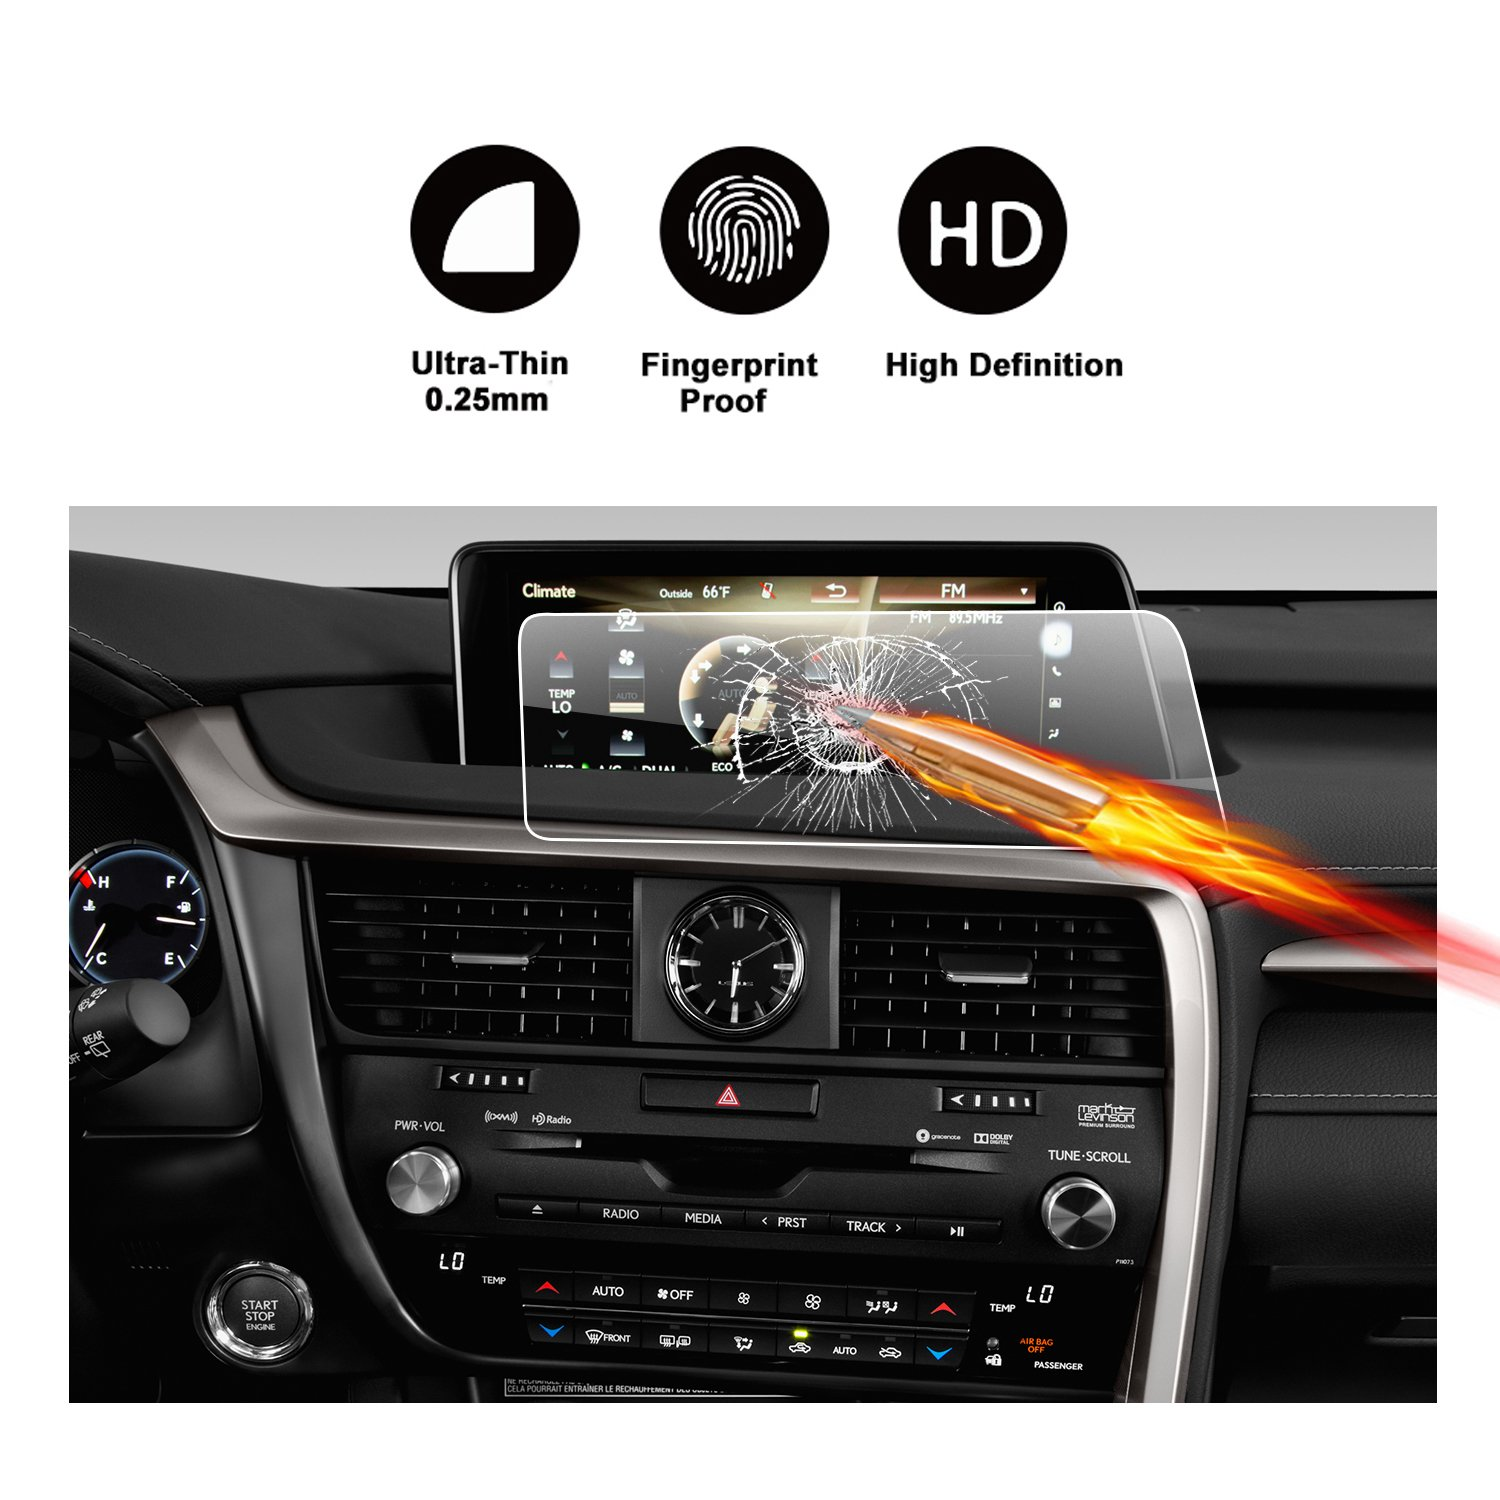 9H Tempered Glass Infotainment Center Touch Screen Protector Anti Scratch High Clarity LiFan US01CMKC08 LFOTPP Car Navigation Screen Protector Compatible for 2017 Cadenza UVO 8 Inch,